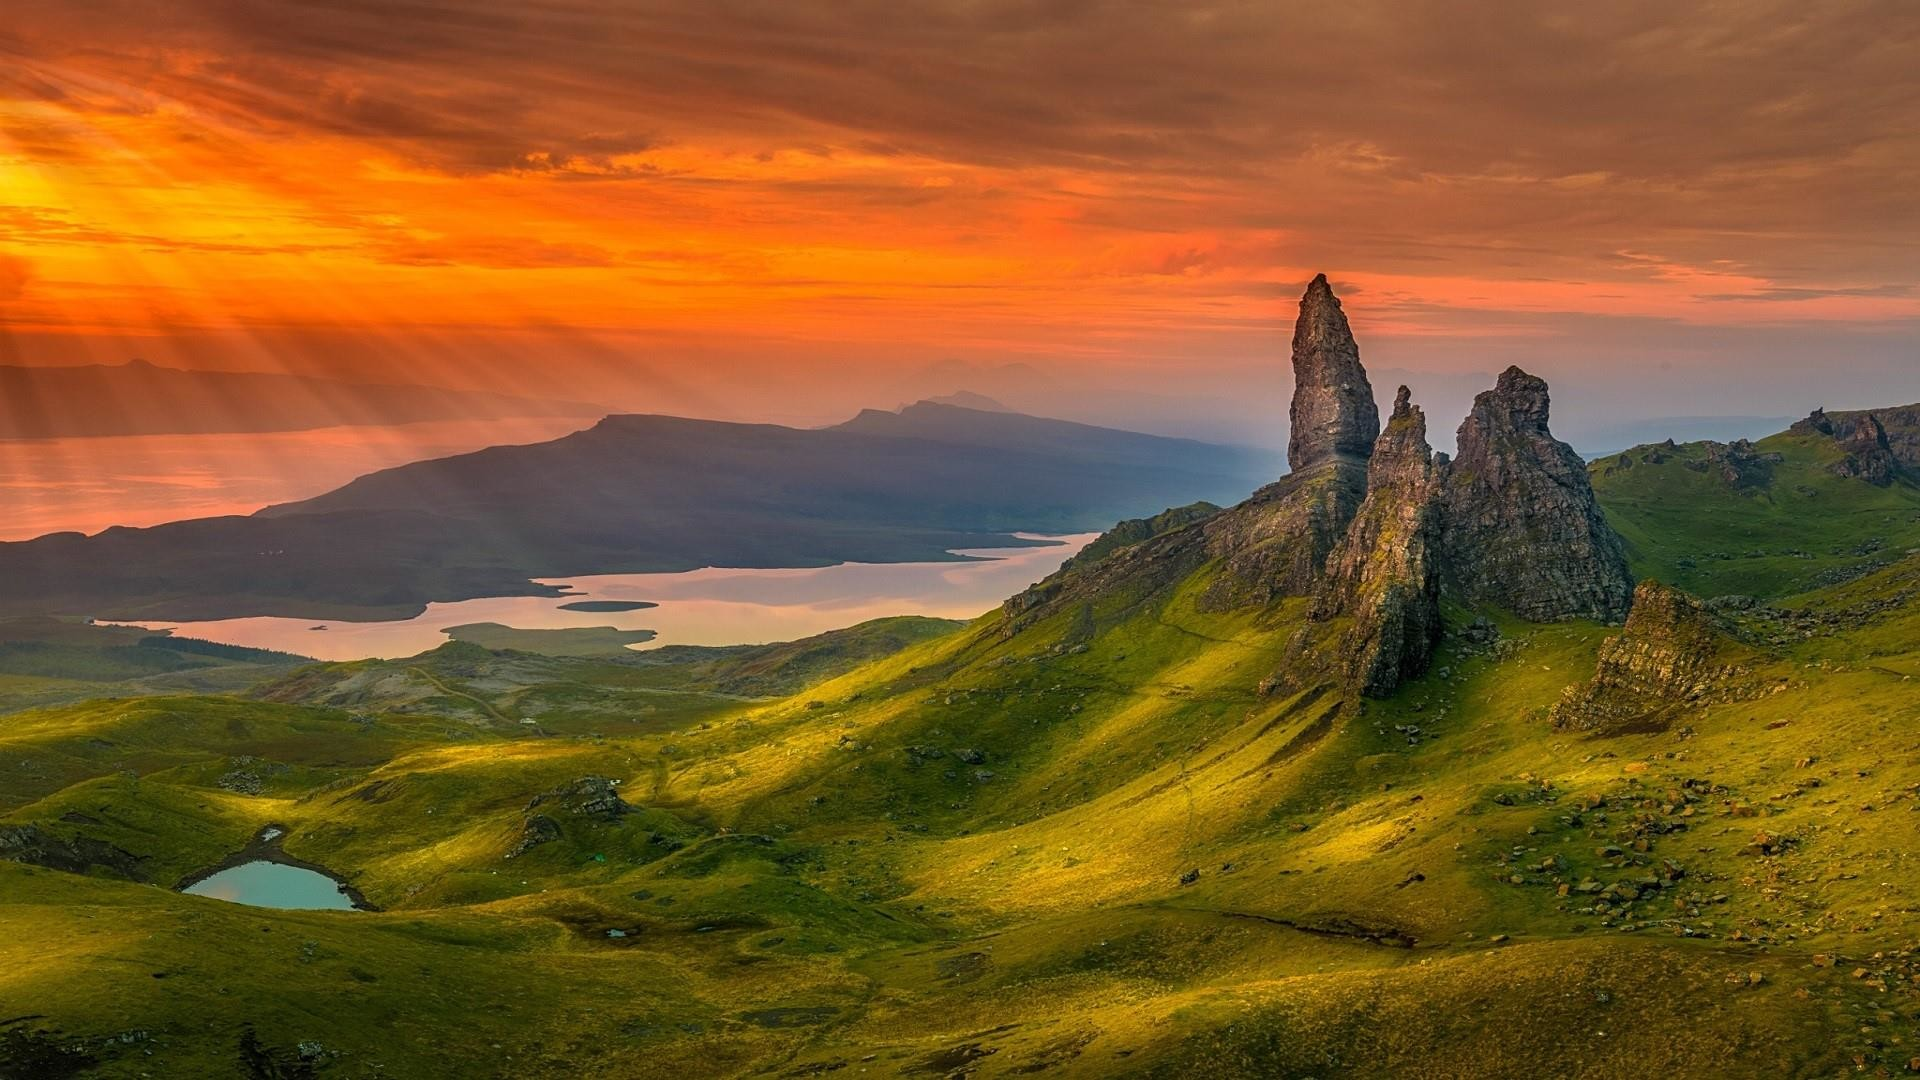 Res: 1920x1080, Old Man Of Storr On The Isle Of Skye In Scotland Wallpaper | Wallpaper  Studio 10 | Tens of thousands HD and UltraHD wallpapers for Android,  Windows and Xbox